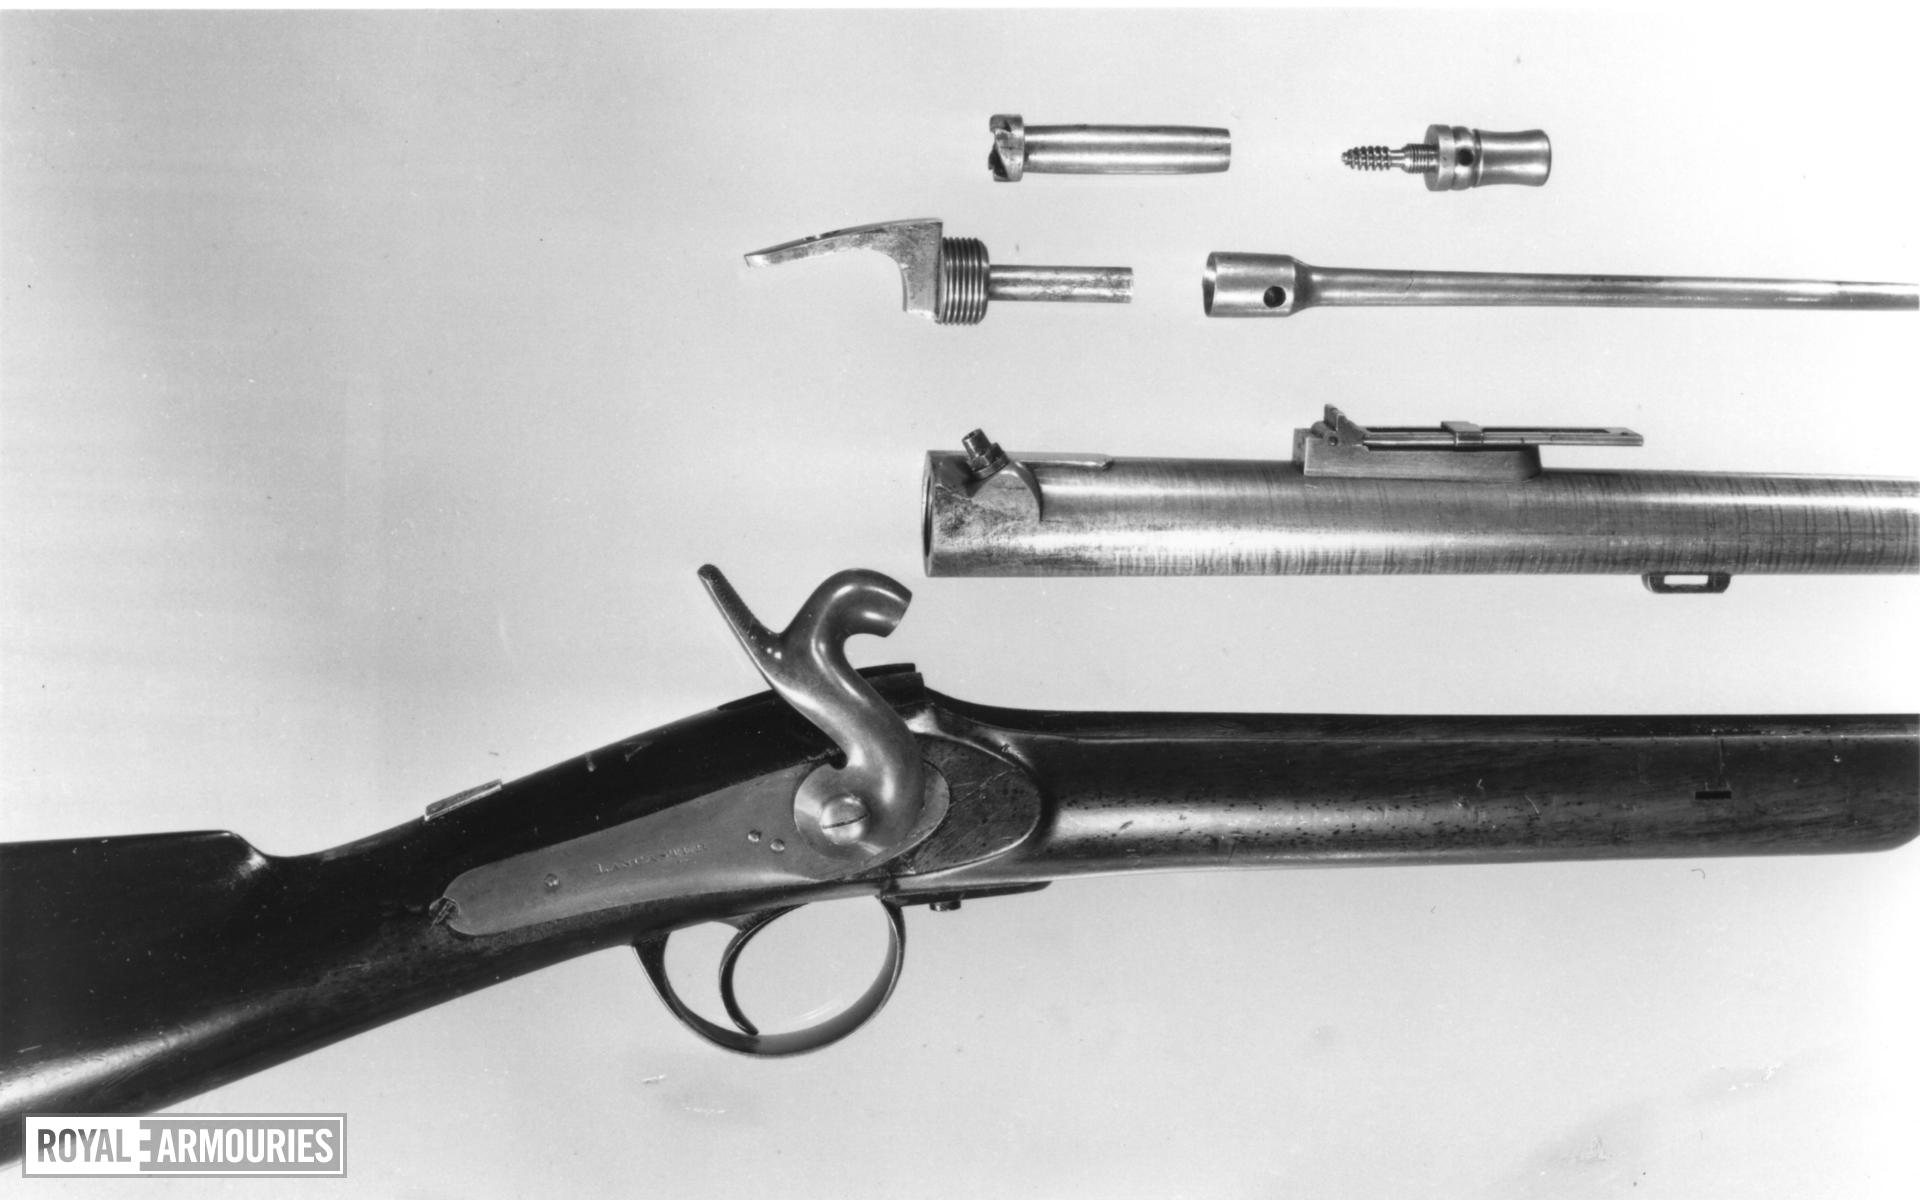 Percussion muzzle-loading military rifle - Lancaster Rifle Charles Lancaster's pillar breech rifle